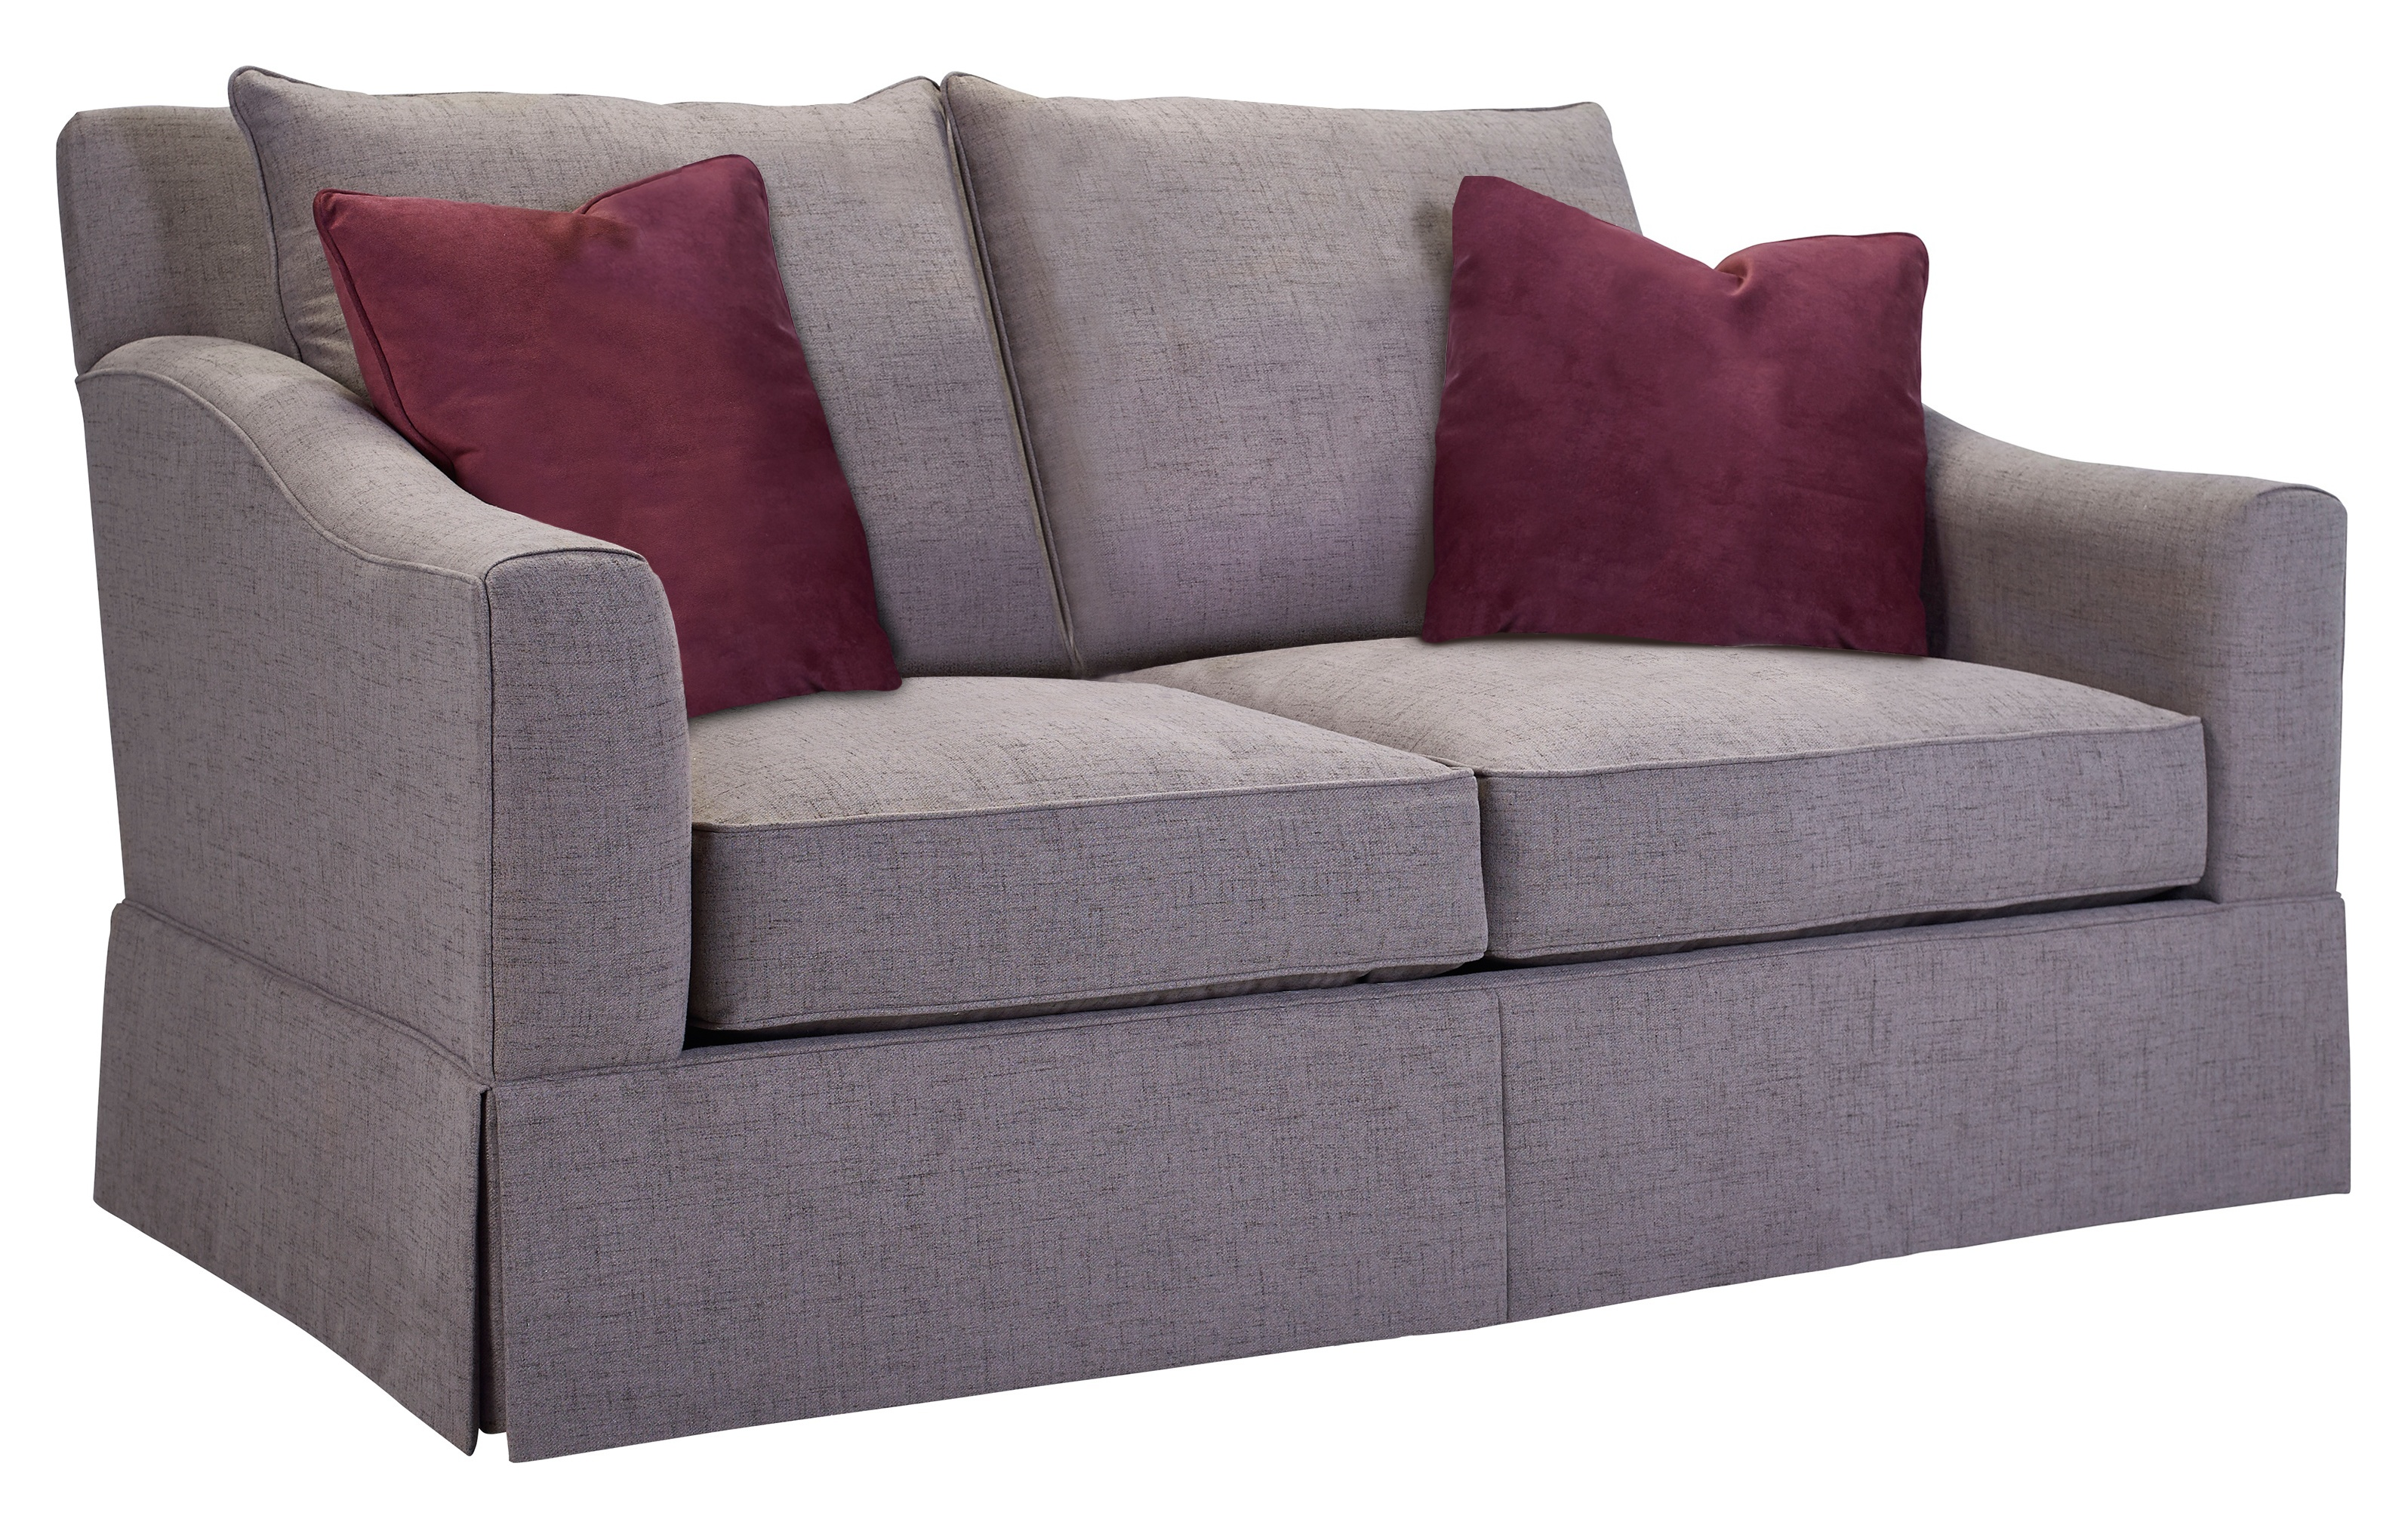 Sofa Bed For Sale Regina Regina 4284 Sofa Collection Customize 350 Sofas And Sectionals